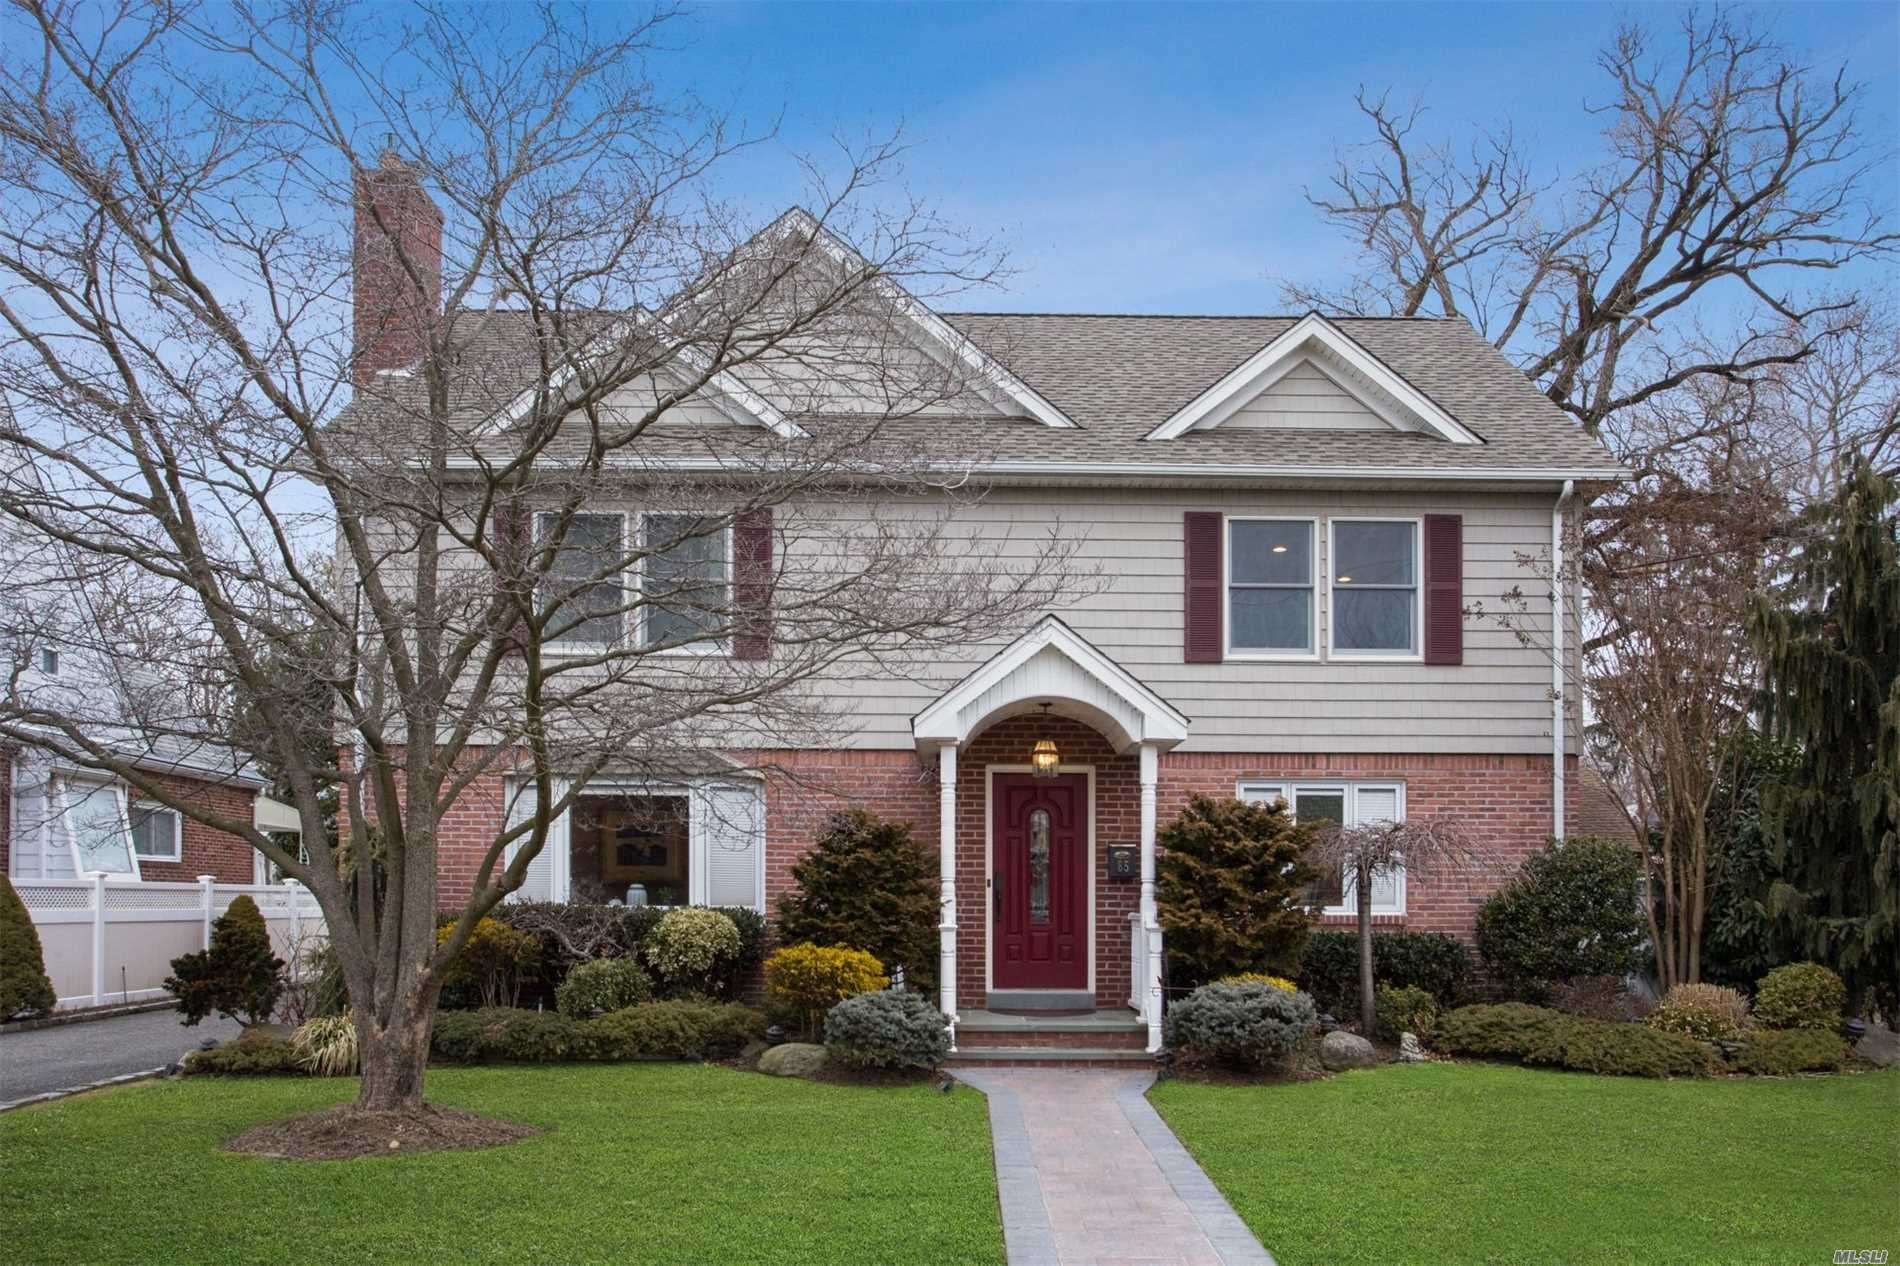 Mint Condition Colonial In Heart Of Malverne, Lg Living Room W/Gas Fp, Entry Fyer W/Coat Closet, Chefs Eik, Dining Rm, Den, Fb, Office, Guest Room 1Stfl.Lg Master W/Walk In Closet & On-Sute Shared Bath, 2Lg Bedrooms On 2nd Fl. Central Air, Built-In Pool And So Much More! A True Home!